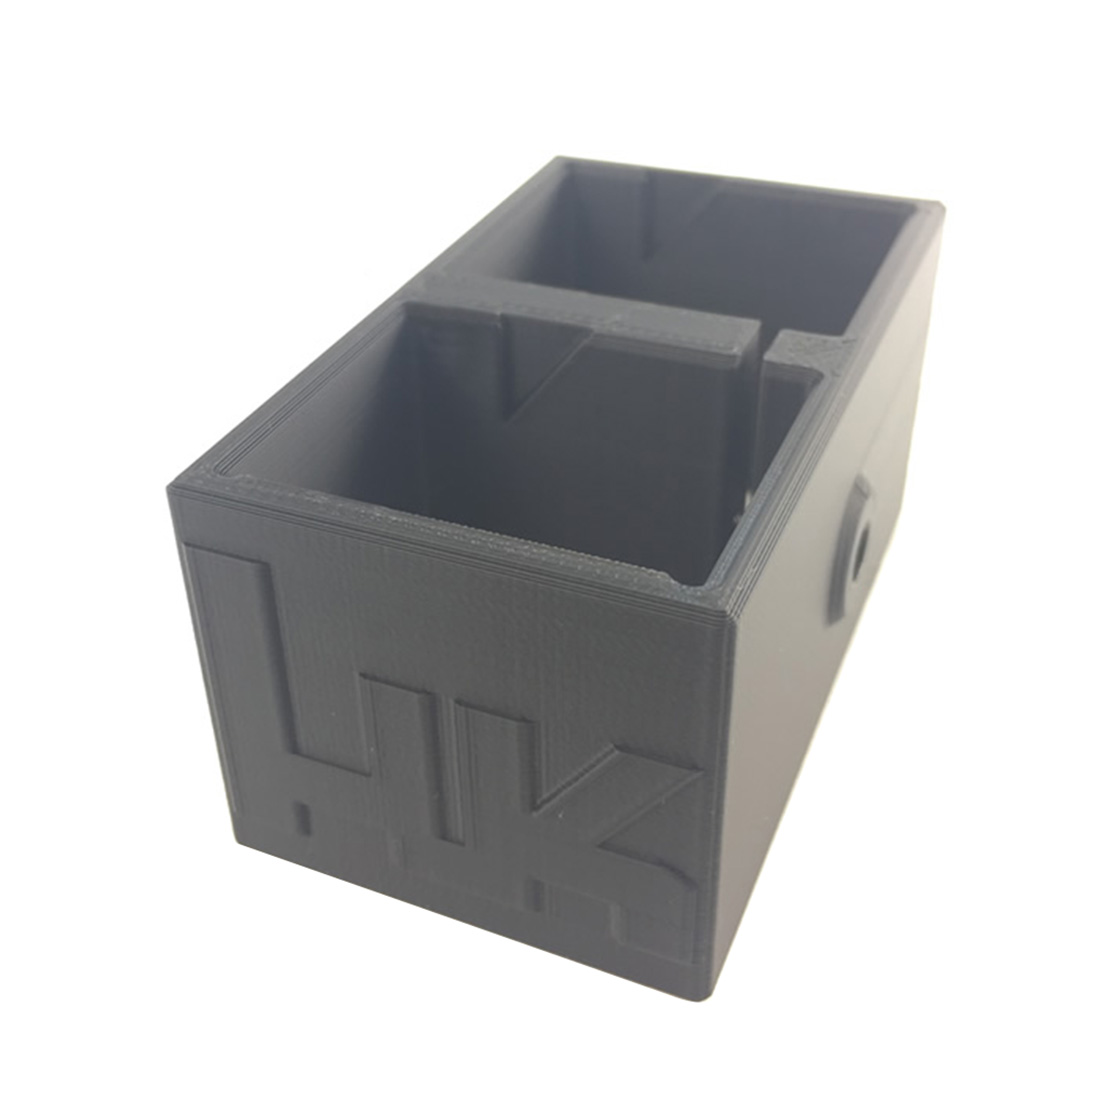 New 1 Pcs Pla U-mp45 Magazine Parallel Connector For Water Gel Beads Parts Modified Exterior High Part Quality- Black Clear And Distinctive